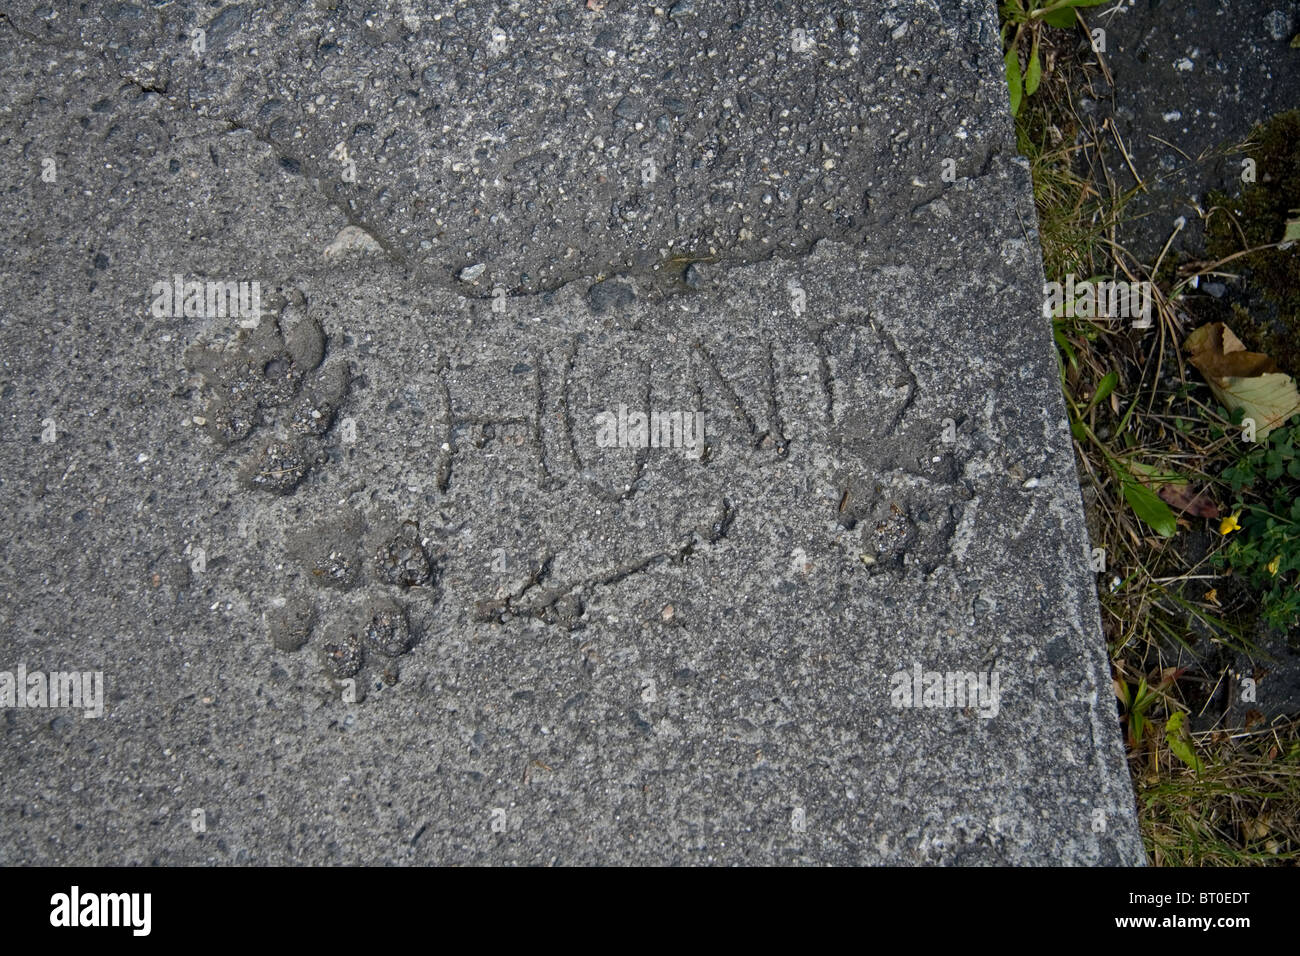 The German word hund for dog with paw prints in a concreteslab - Stock Image